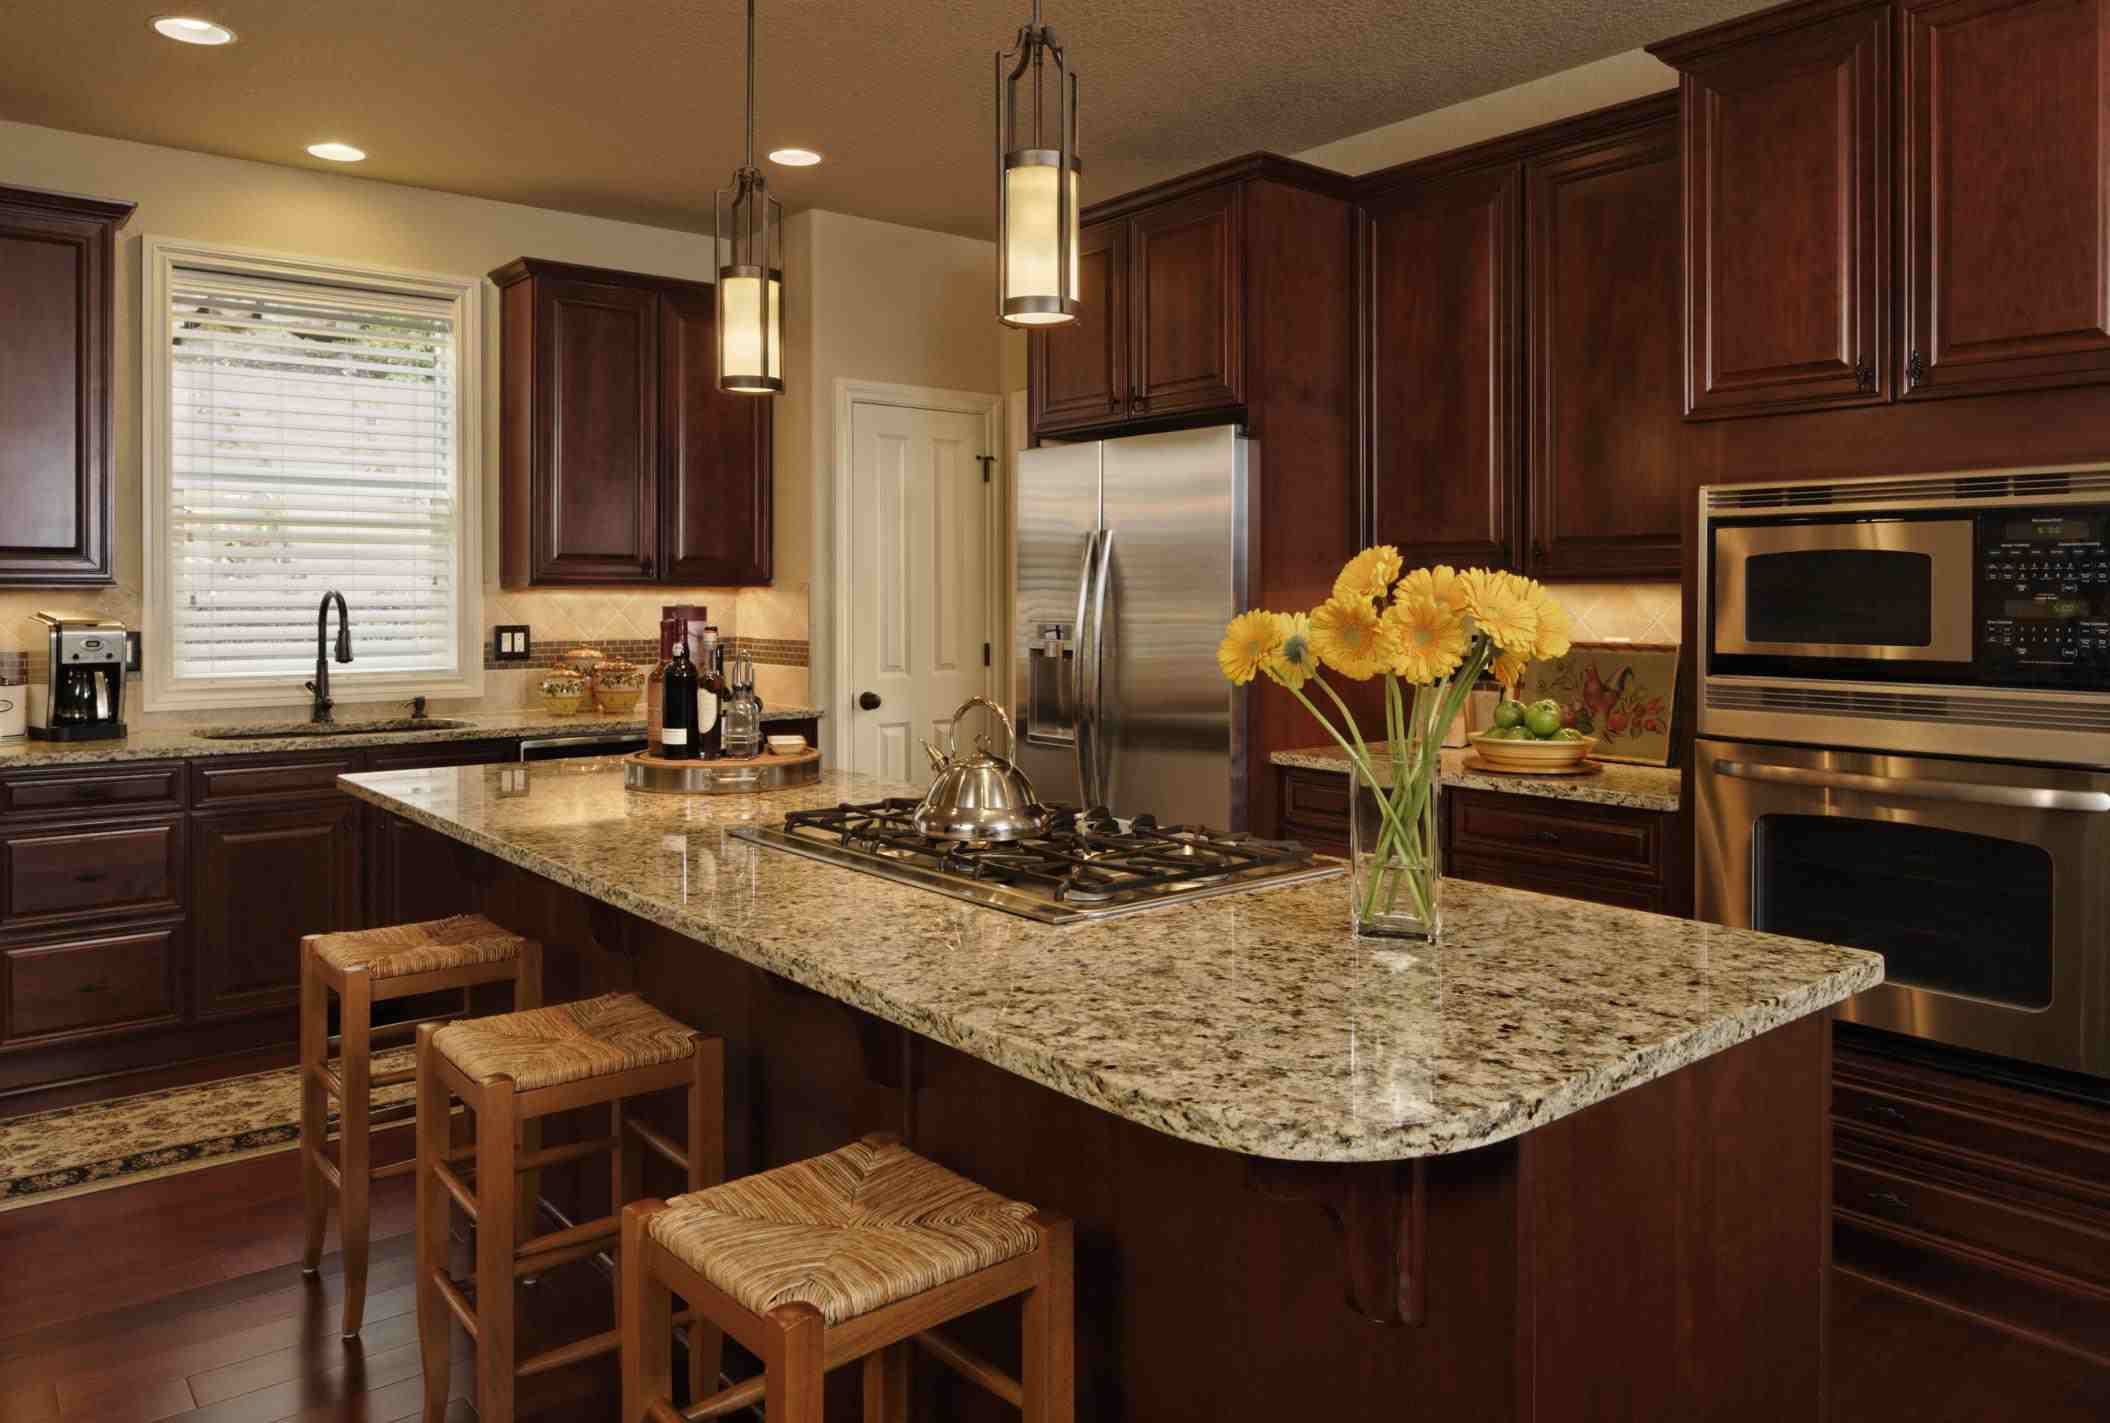 countertops kitchen granite it installed s options stone quartz installation white new countertop island see